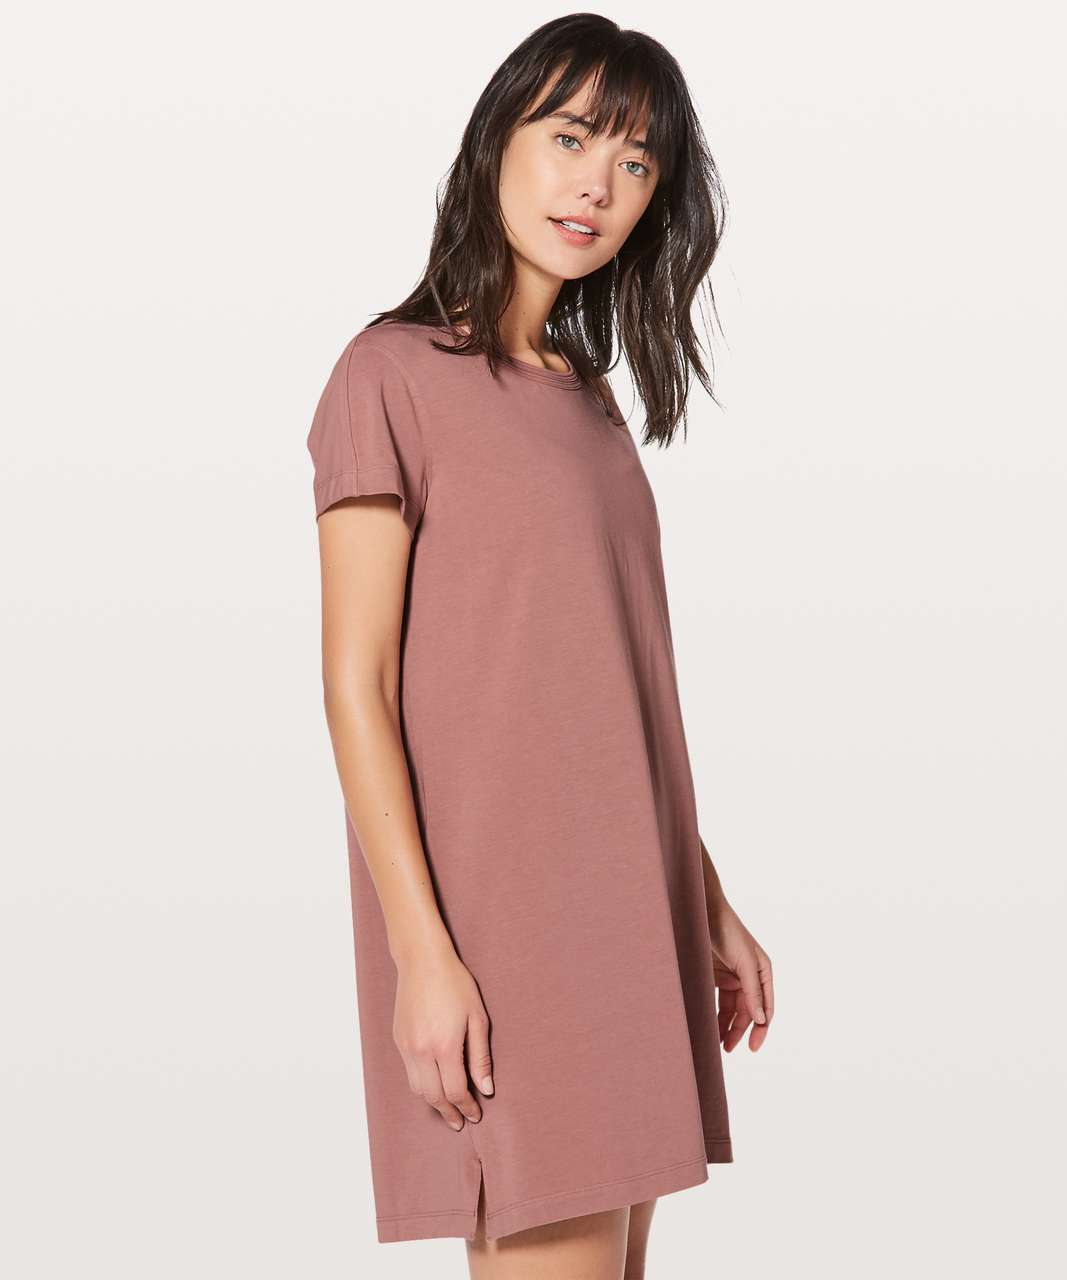 Lululemon Day Tripper Dress - Quicksand